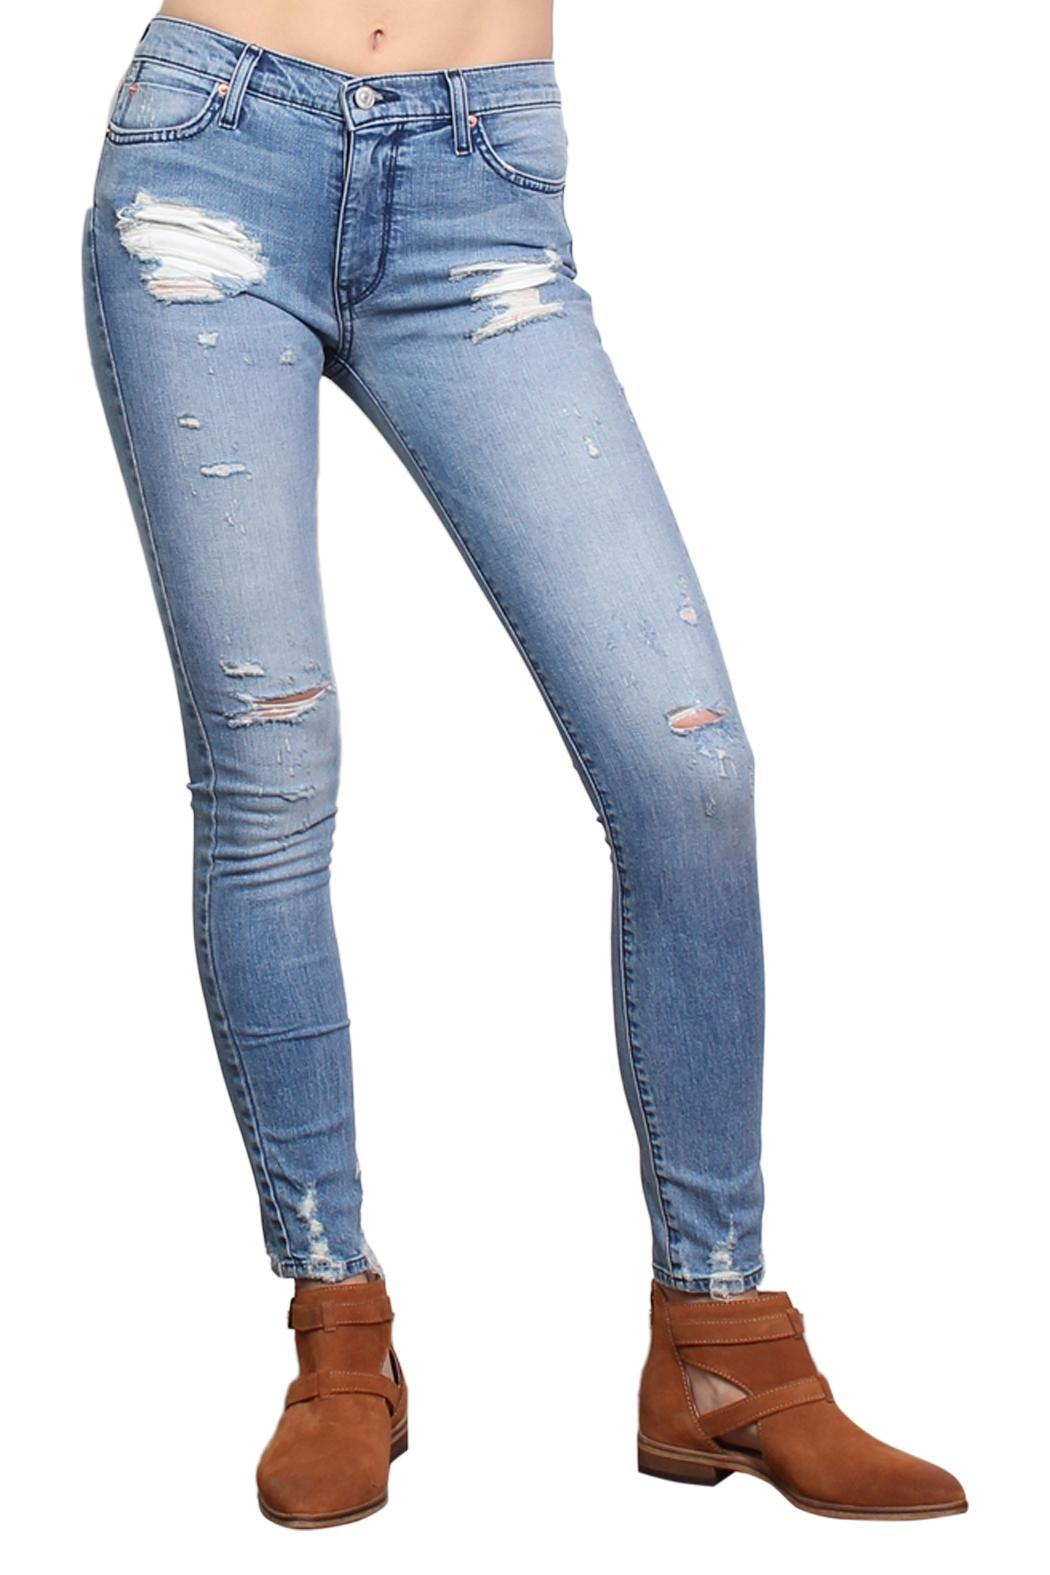 Michelle by Commune London Skinny Jeans - Front Full Image